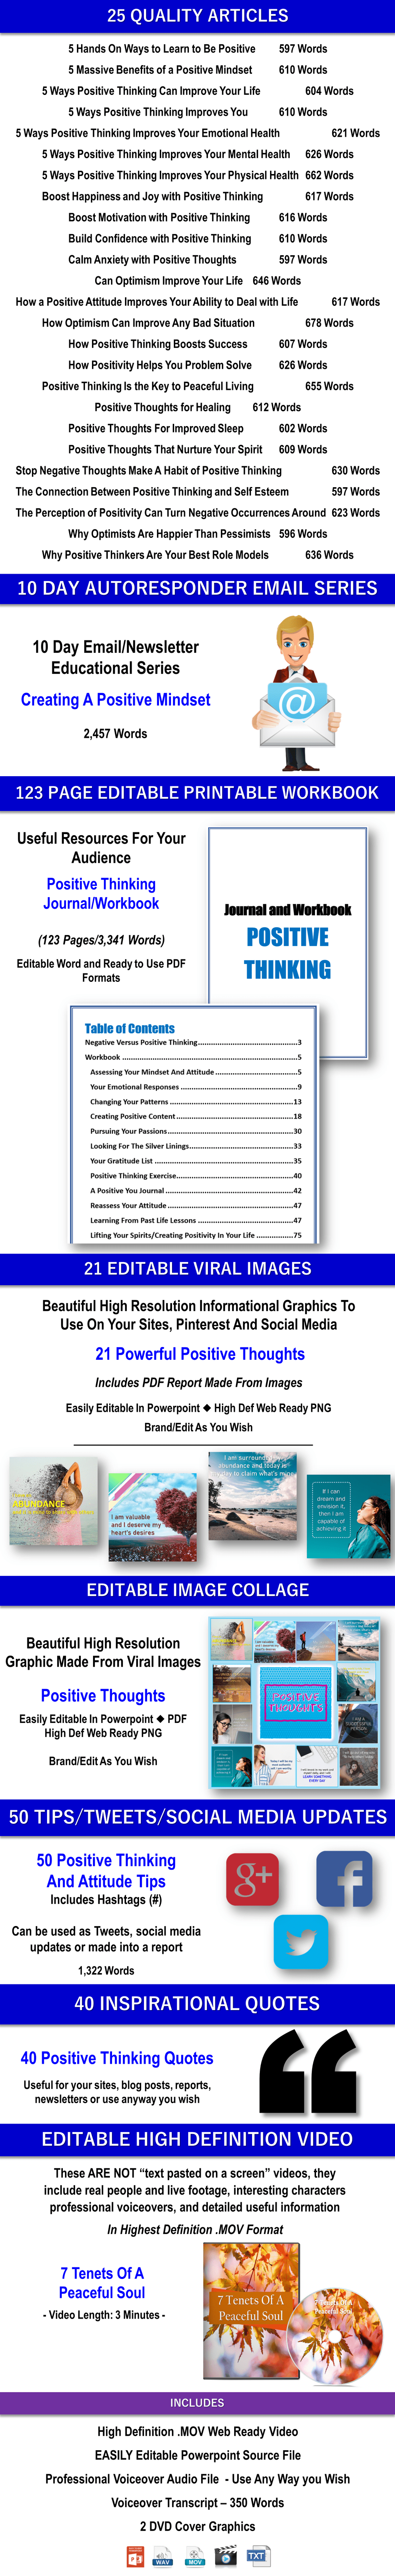 Positive Thinking And Positive Attitude Content with PLR Rights